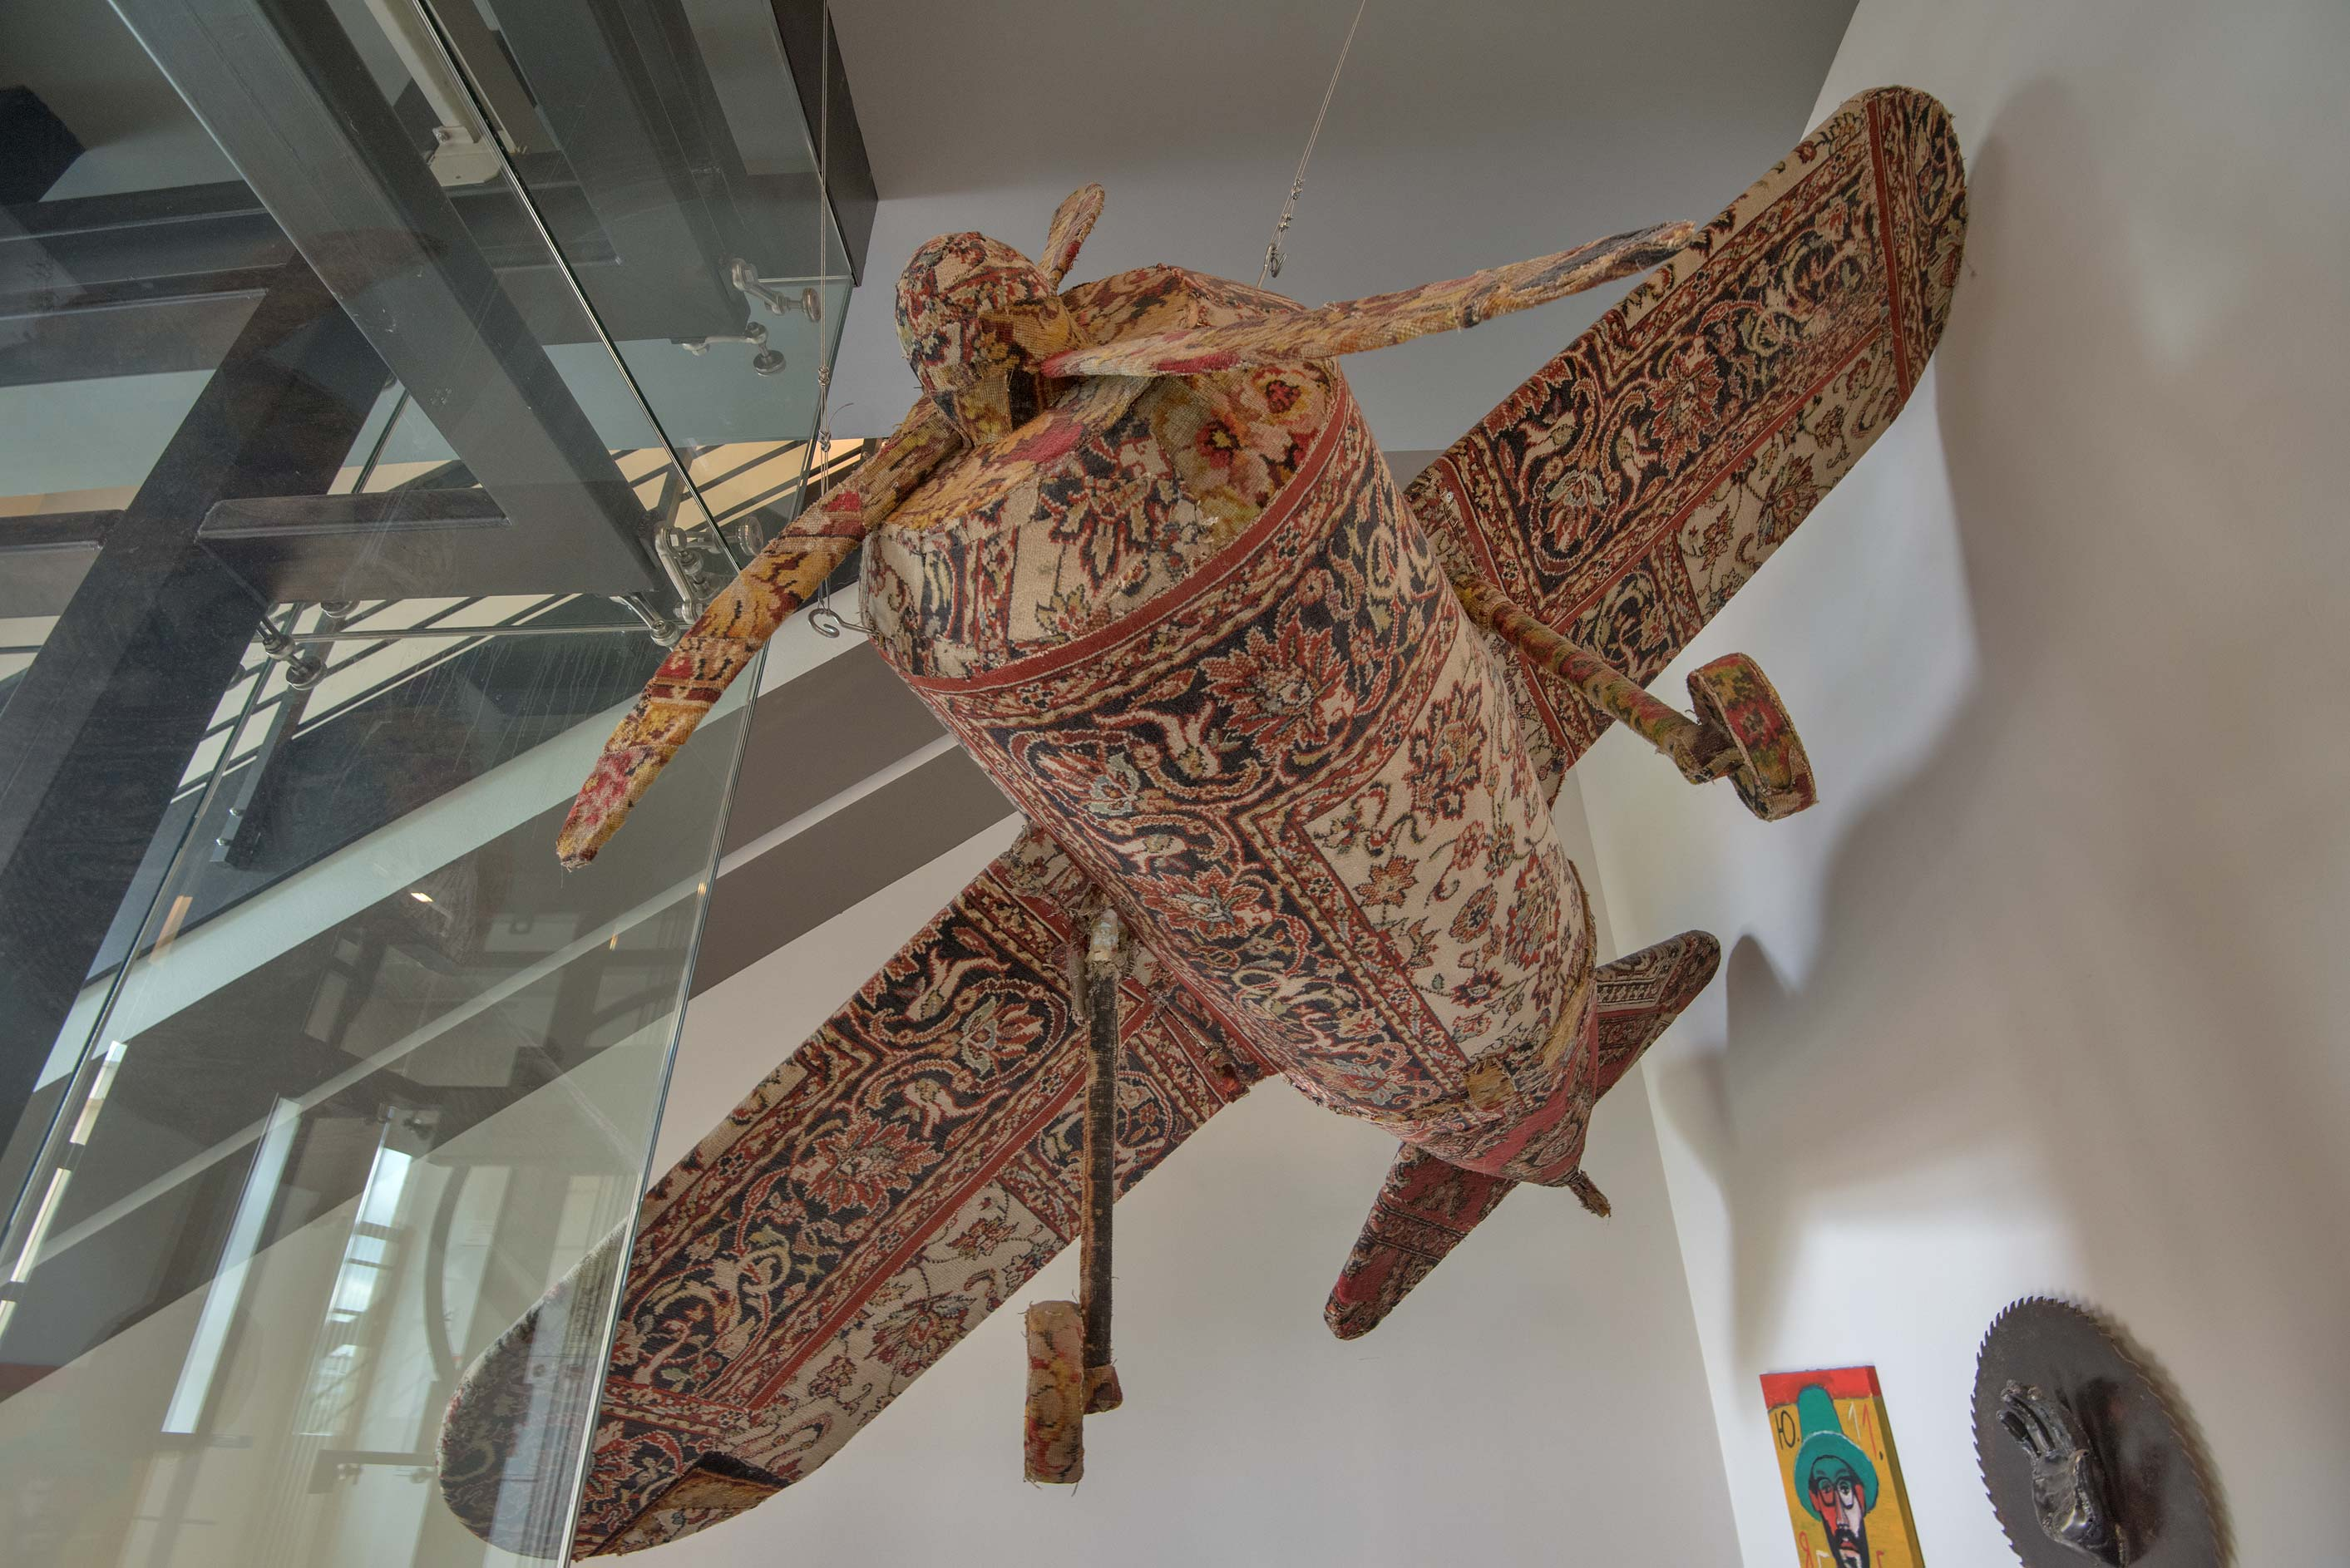 Airplane model covered by carpet in Erarta Museum...Art. St.Petersburg, Russia